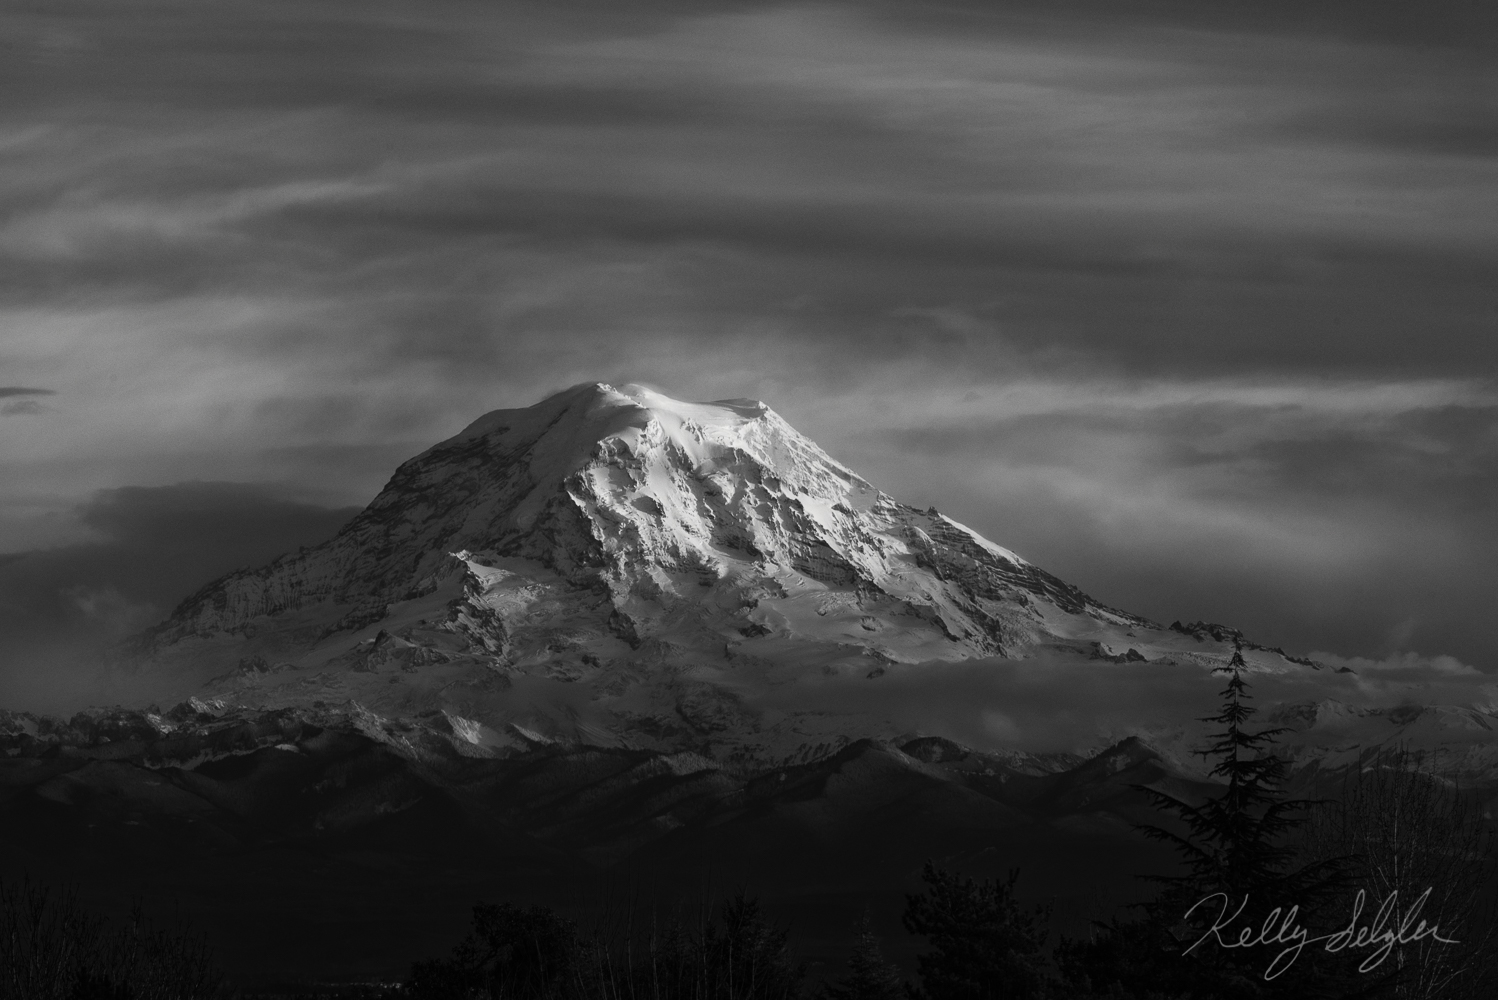 light, tacoma, mt rainier, magical, photo